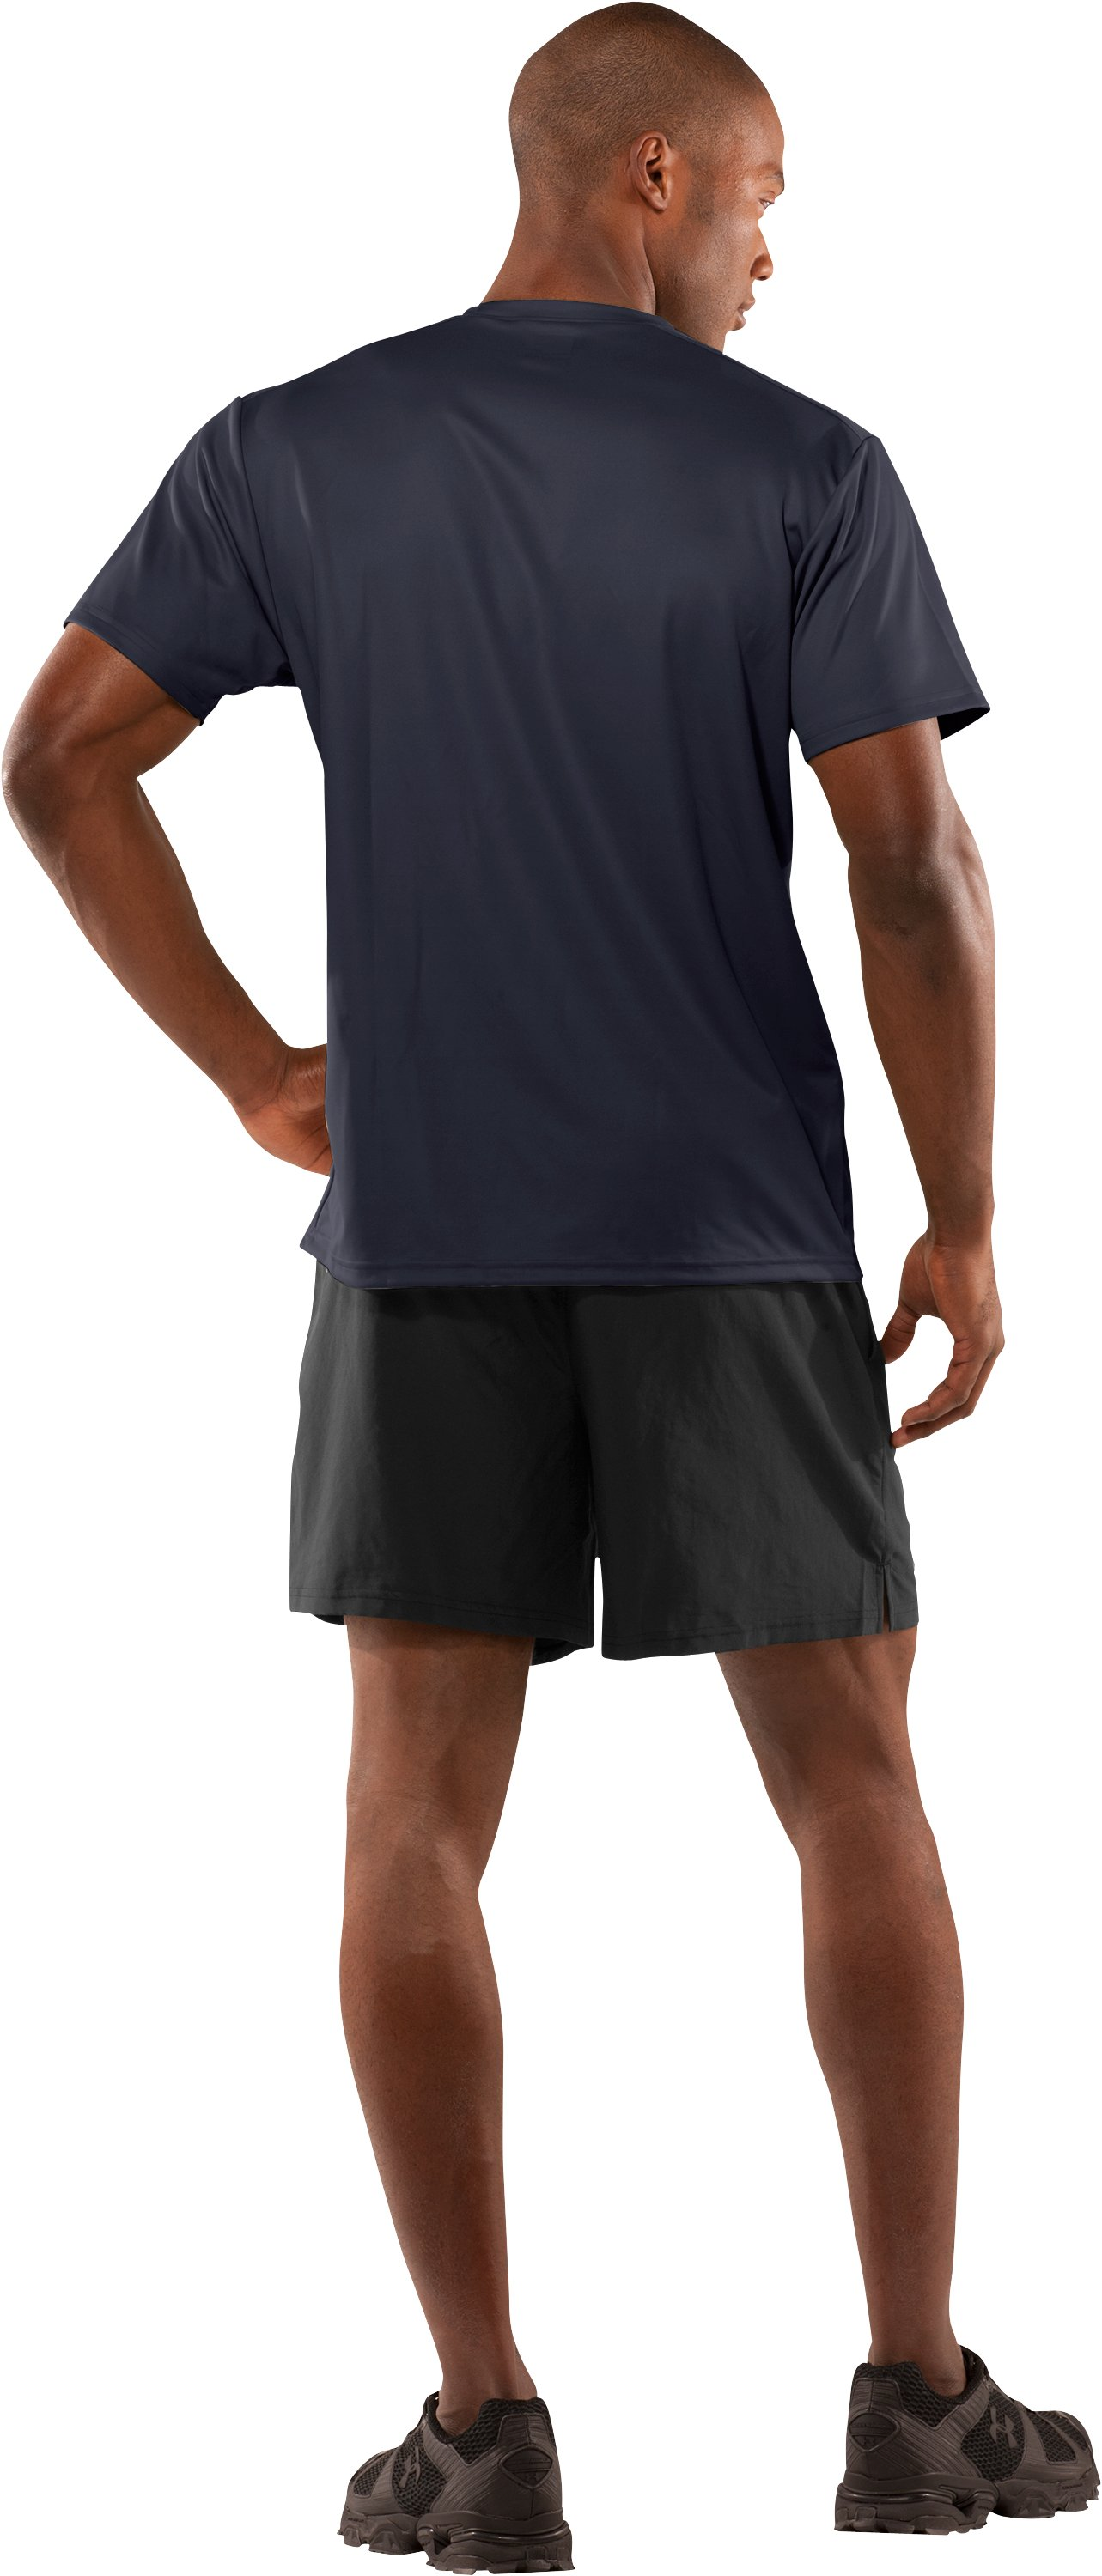 Men's UA HeatGear® Tactical Short Sleeve T-Shirt, Dark Navy Blue , Back